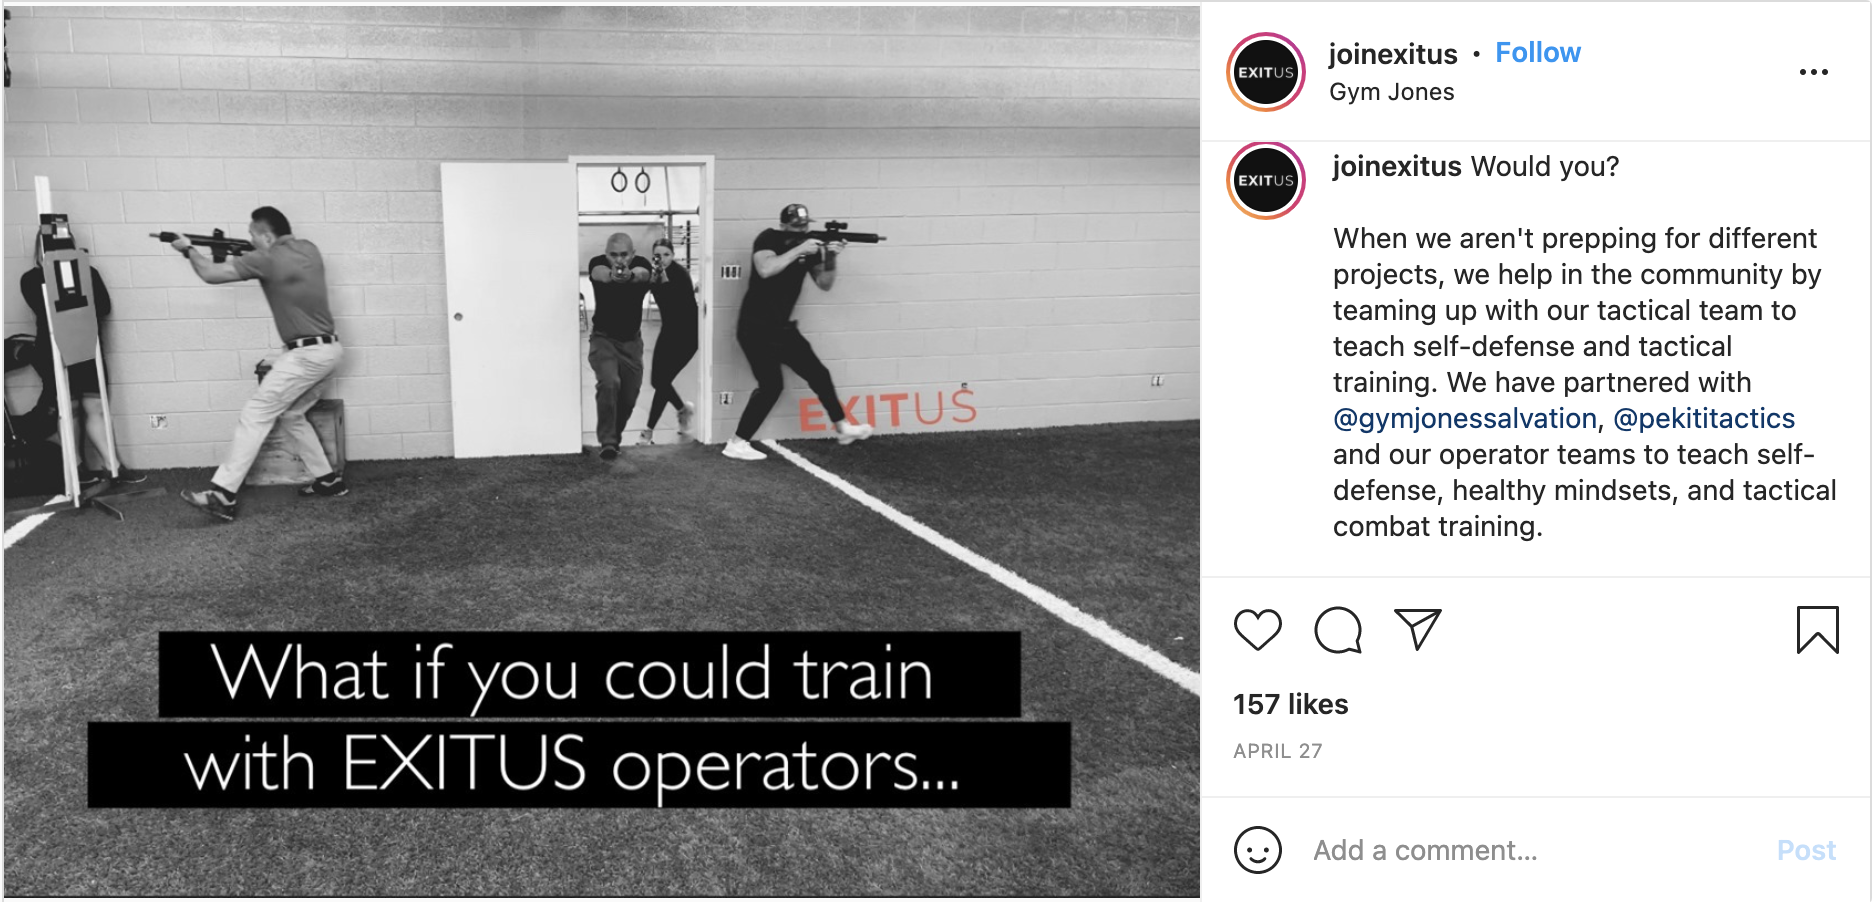 Exitus offers a chance to train with its operators.